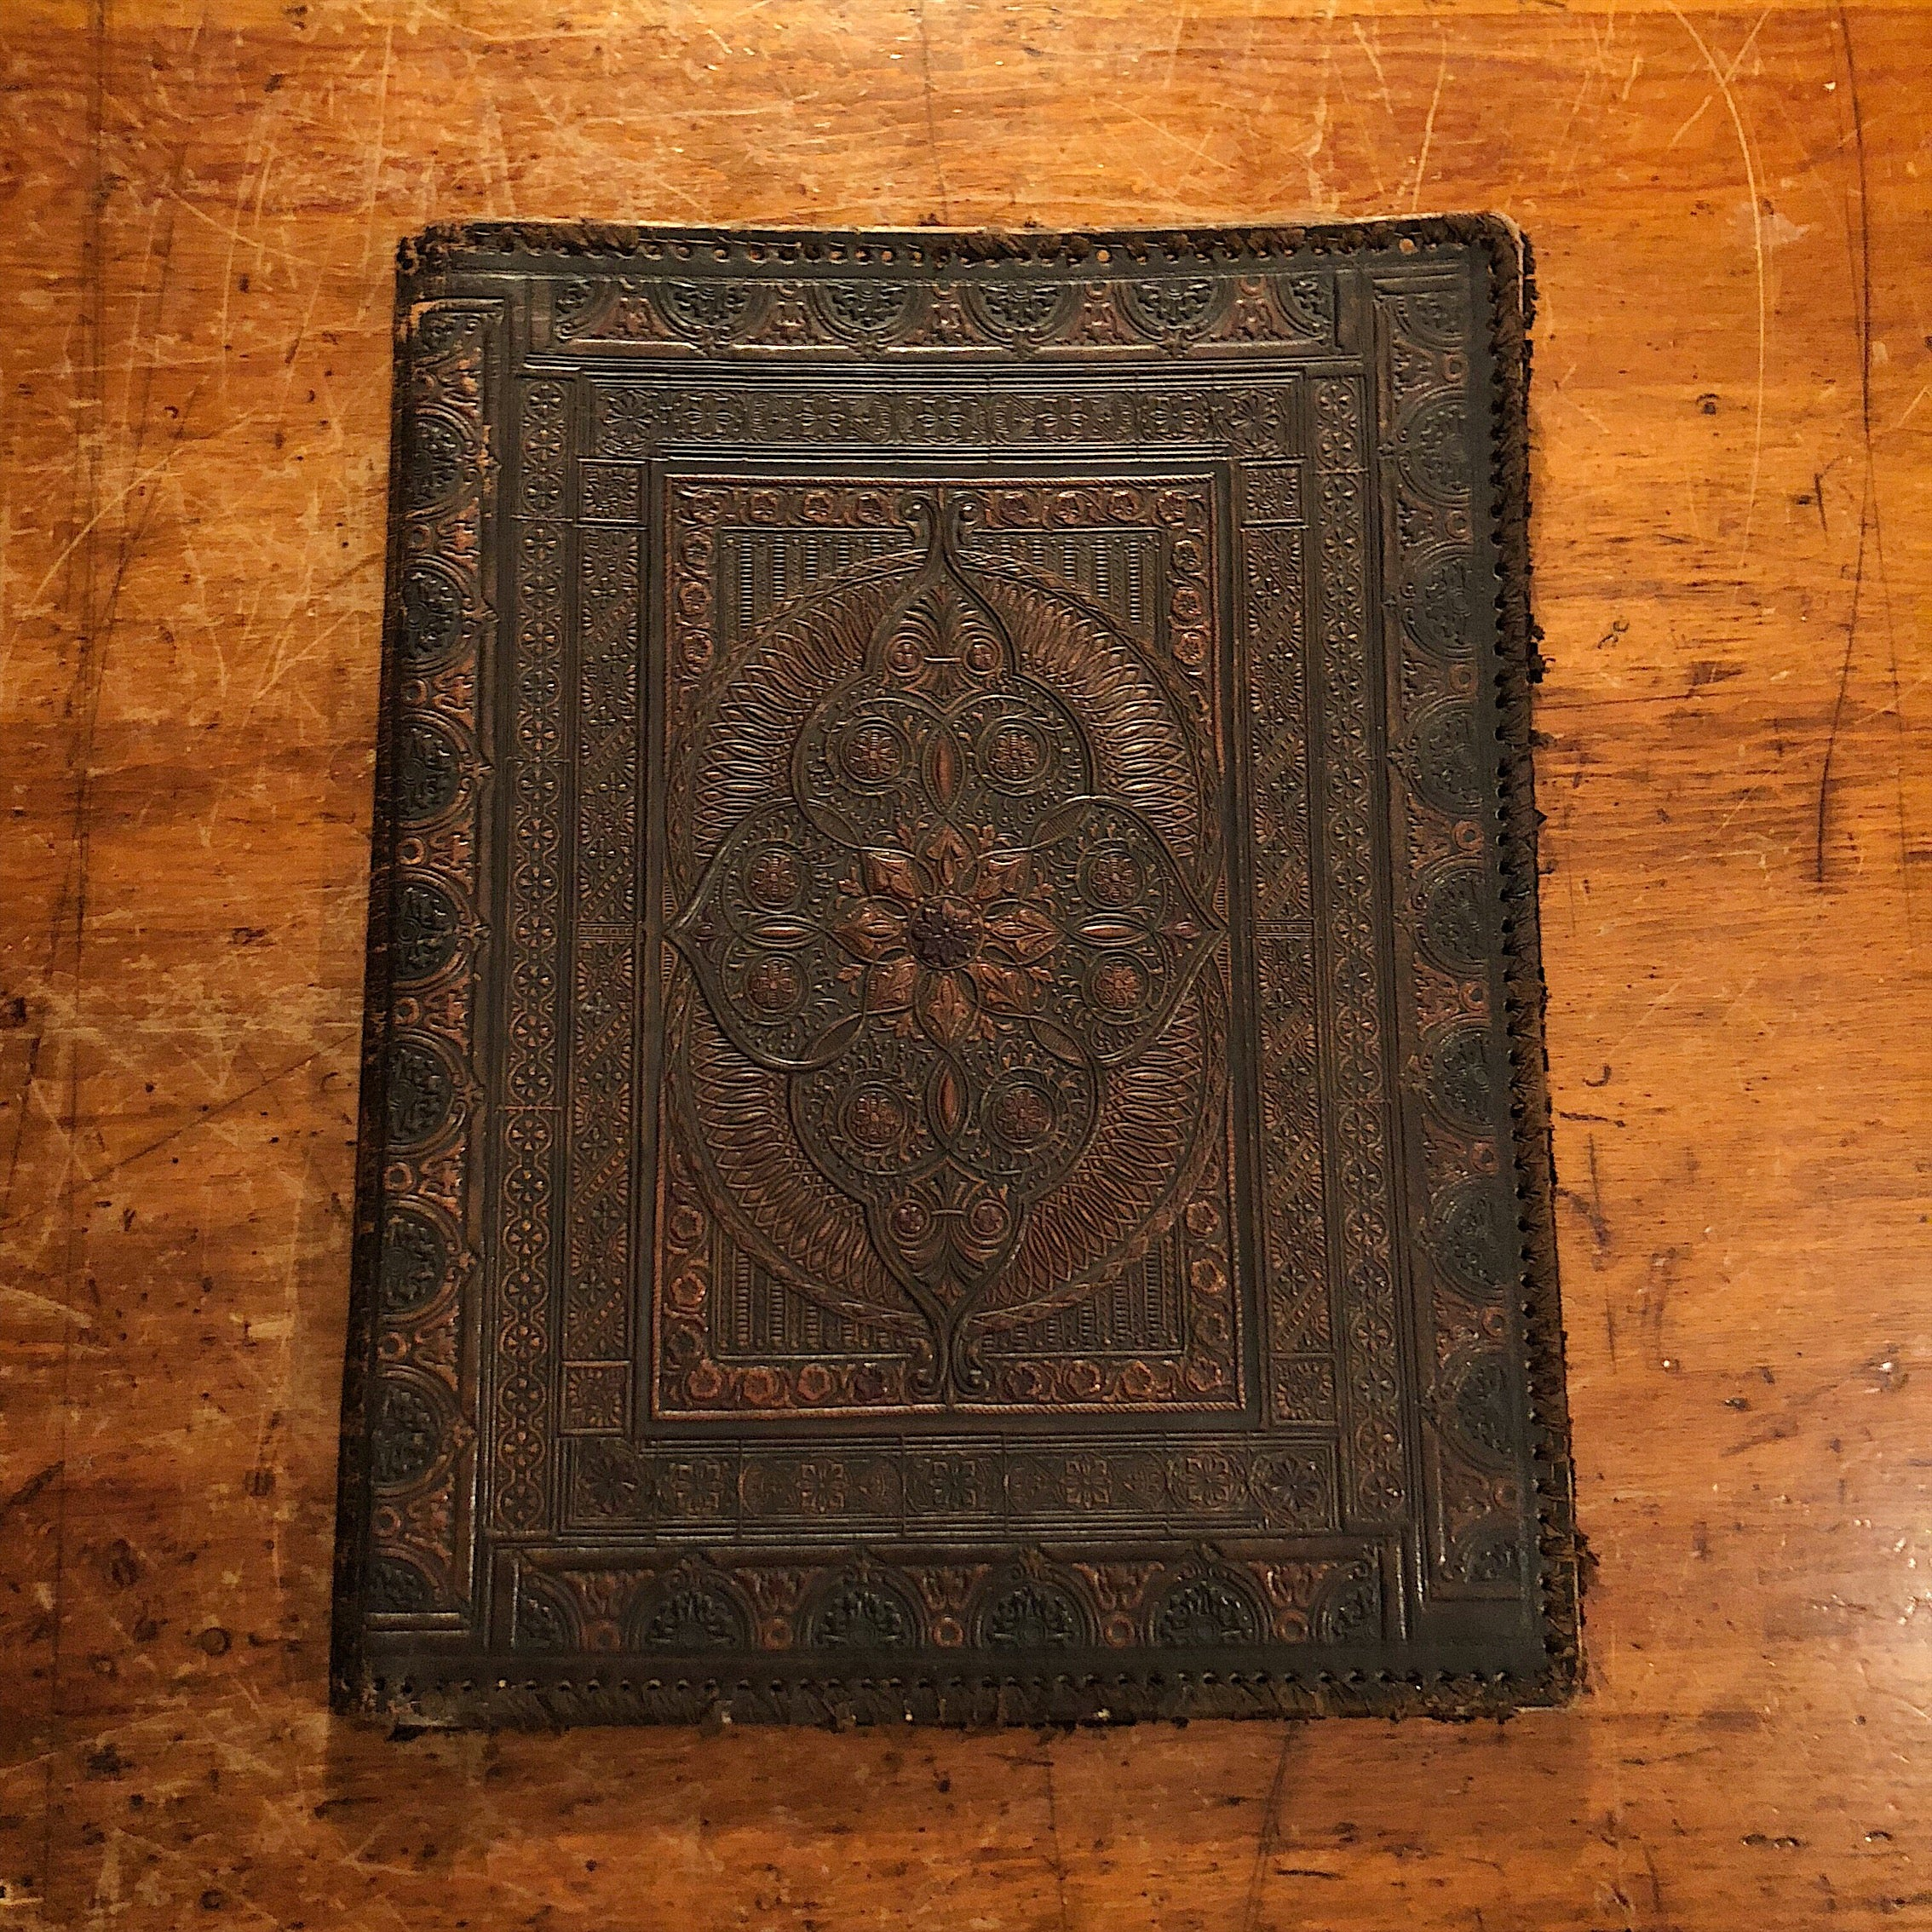 Antique Leather Portfolio Cover with Tooled Ornate Design - Continental School Manuscript Cover - Arts and Crafts - 19th Century